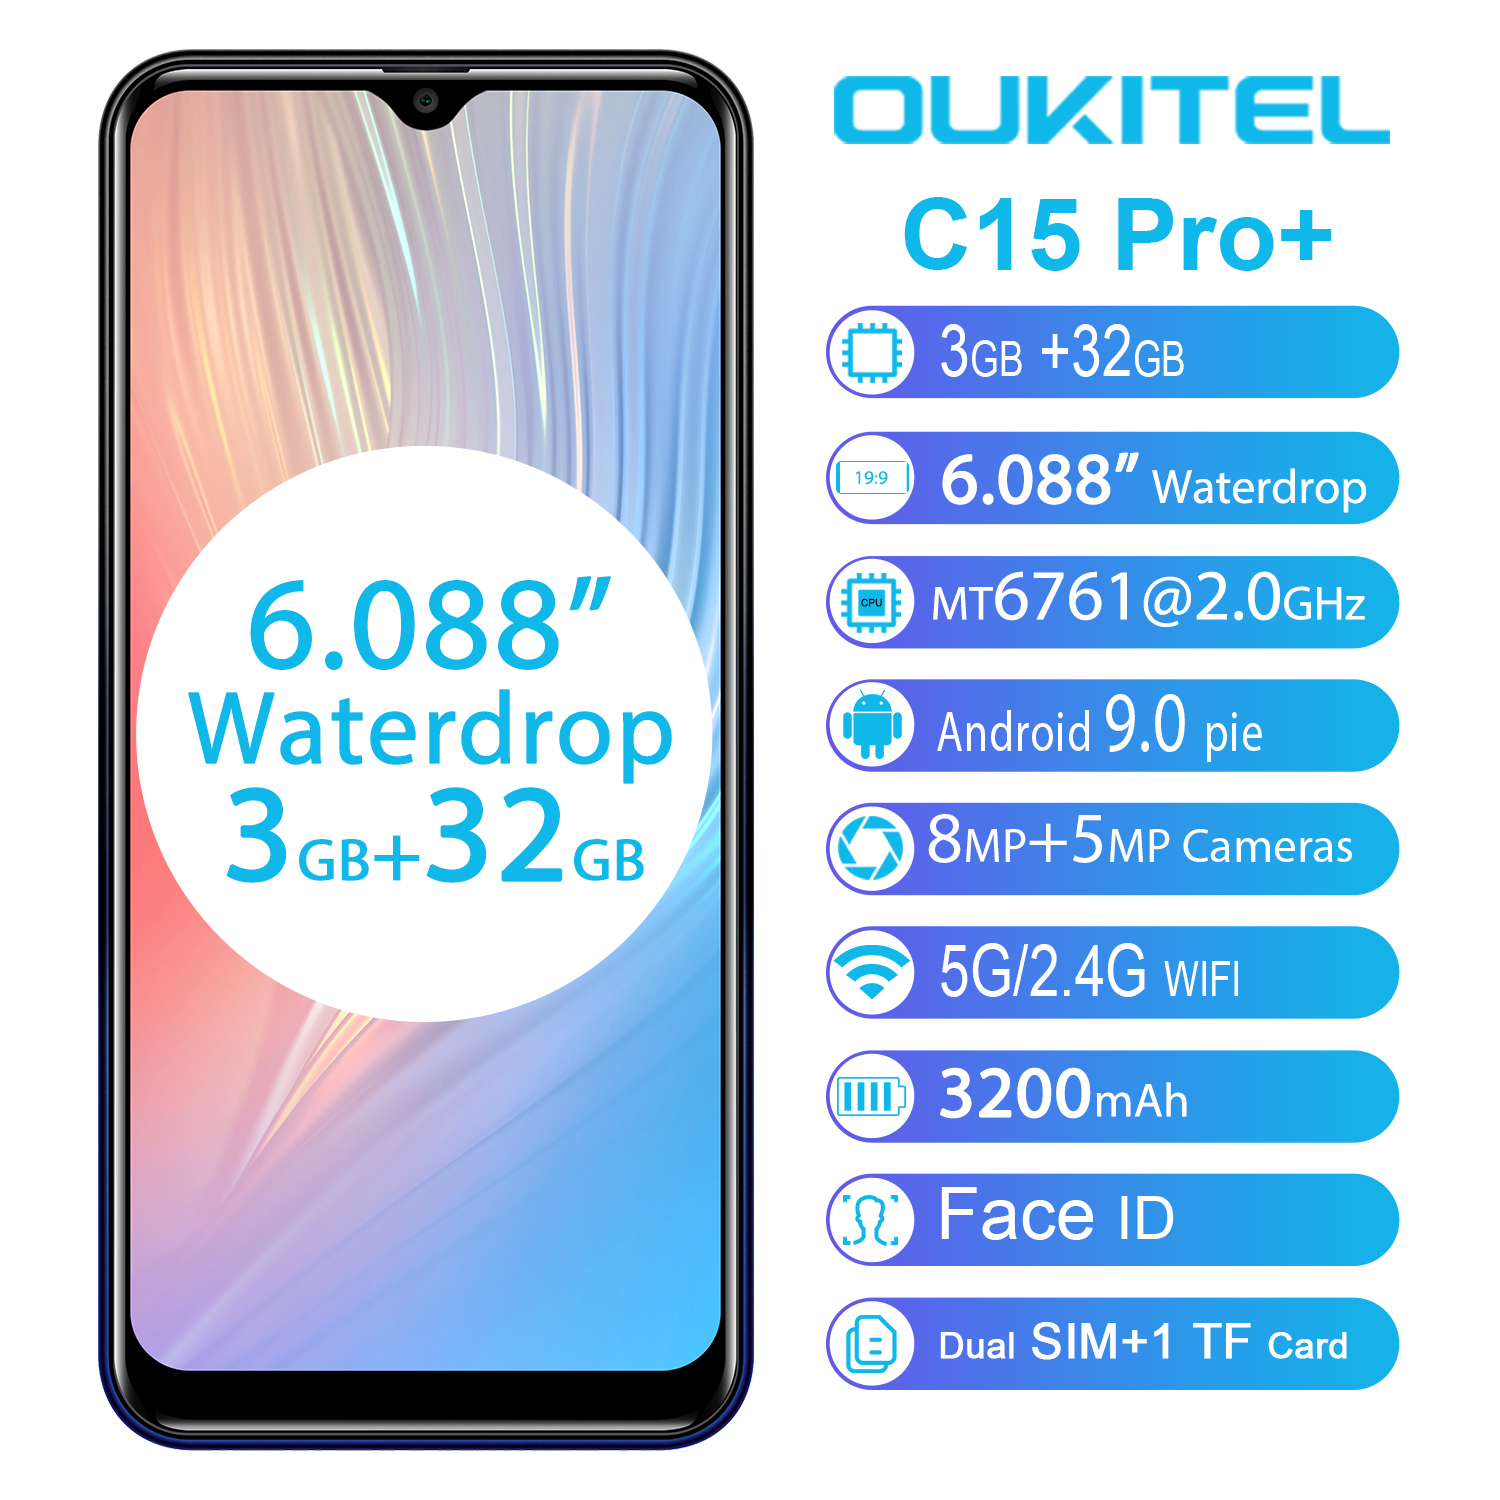 OUKITEL C15 Pro+ 6.088'' 19:9 <font><b>Android</b></font> <font><b>9.0</b></font> Cellphones 3GB 32GB MT6761 Waterdrop 4G <font><b>Smartphone</b></font> Fingerprint Face ID 5G WiFi Phone image